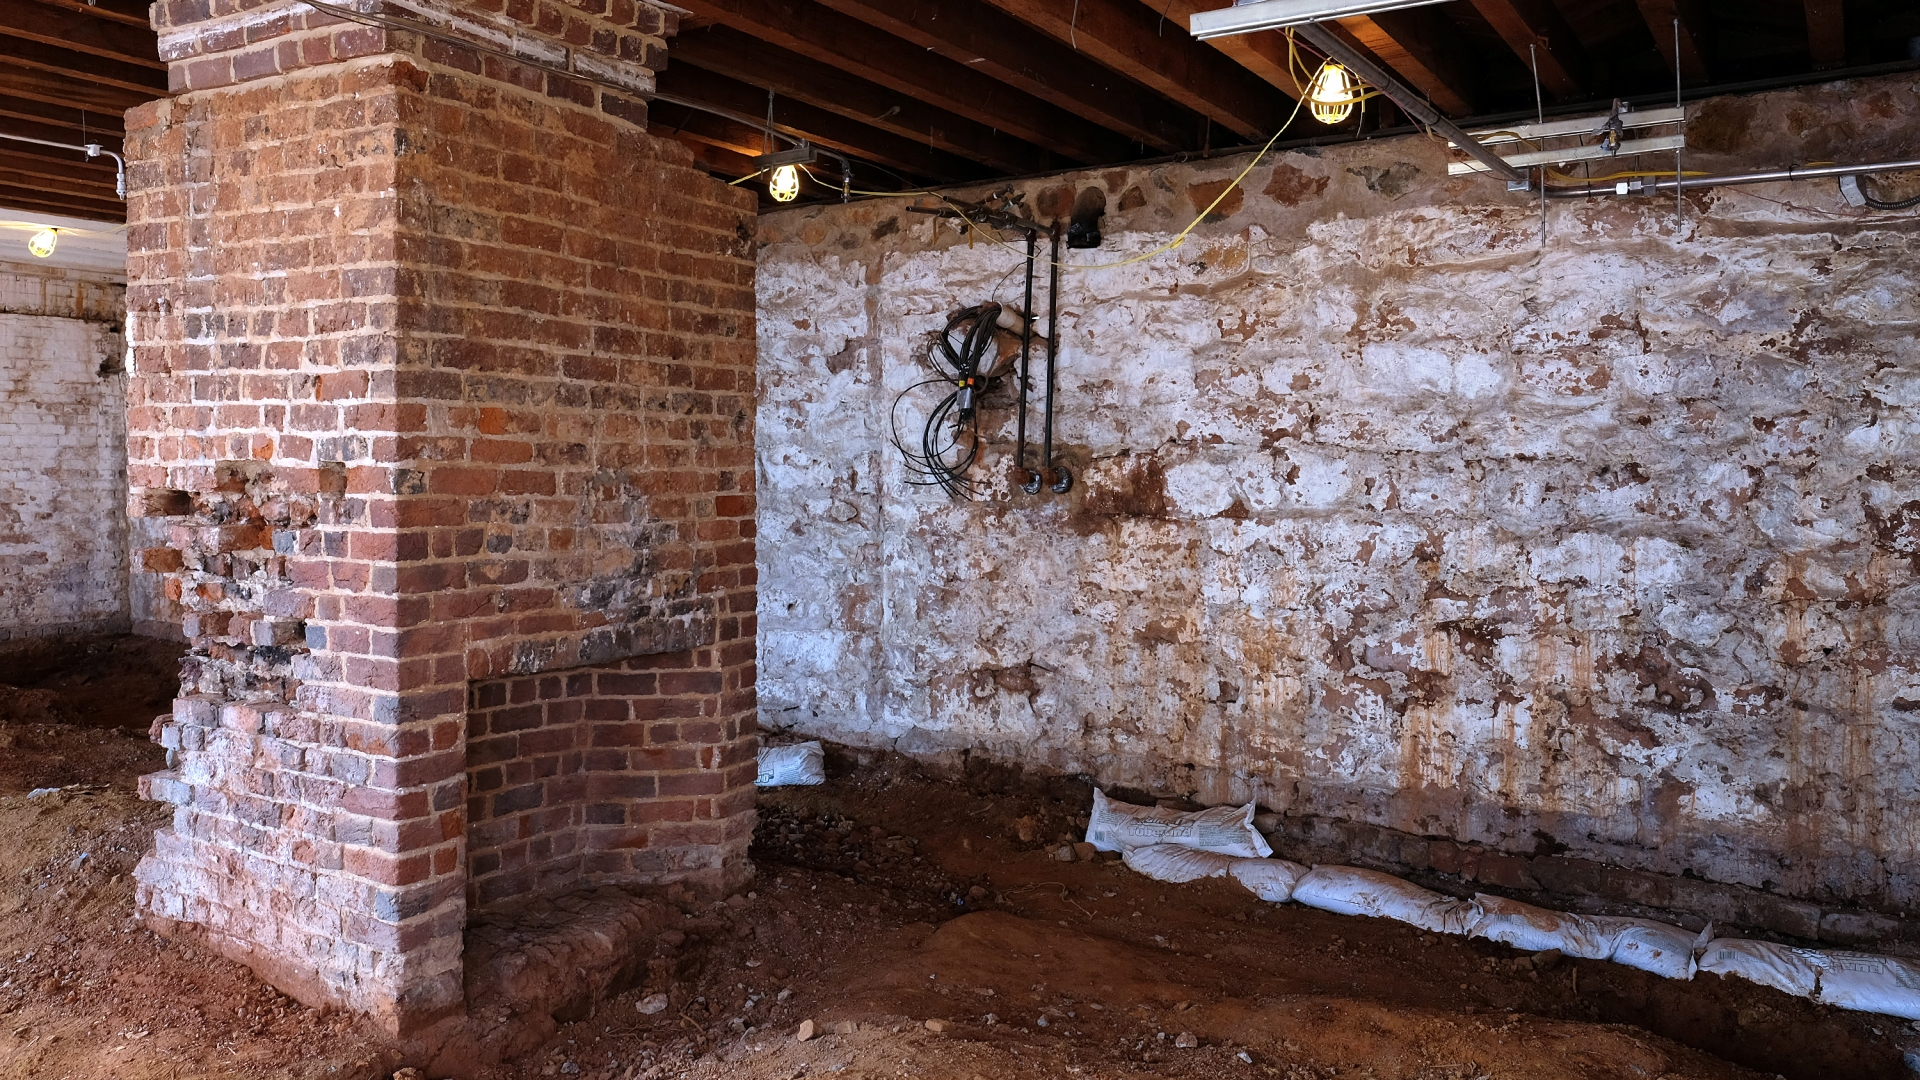 This room, part of the South Dependency of Monticello, is going to be restored as the residence of Sally Hemings. Monticello is currently working to more fully integrate the stories of the enslaved at the historic plantation. (Credit: Norm Shafer for The Washington Post via Getty Images).